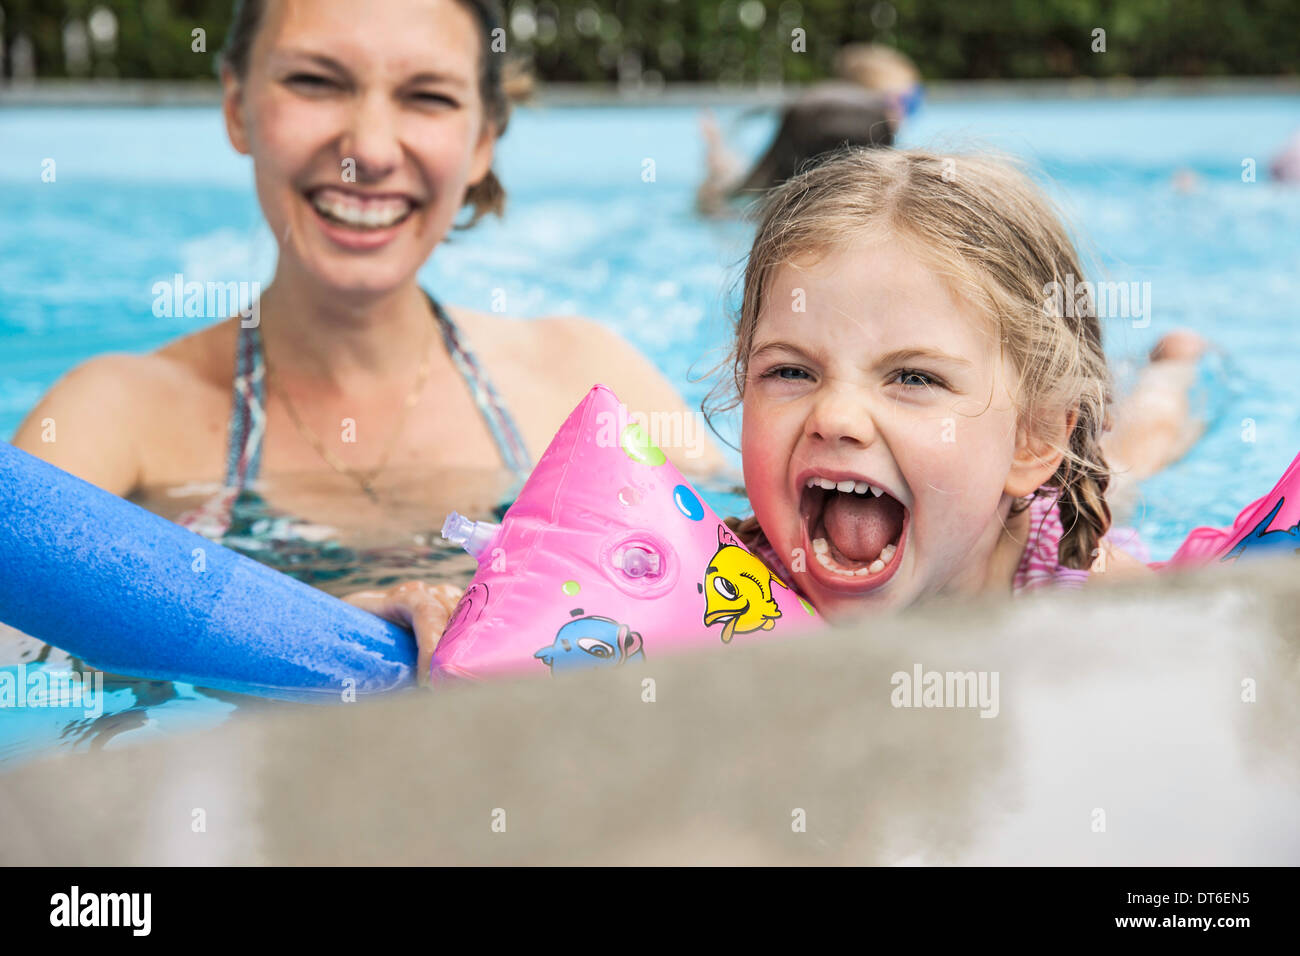 Mother and child having fun in pool - Stock Image